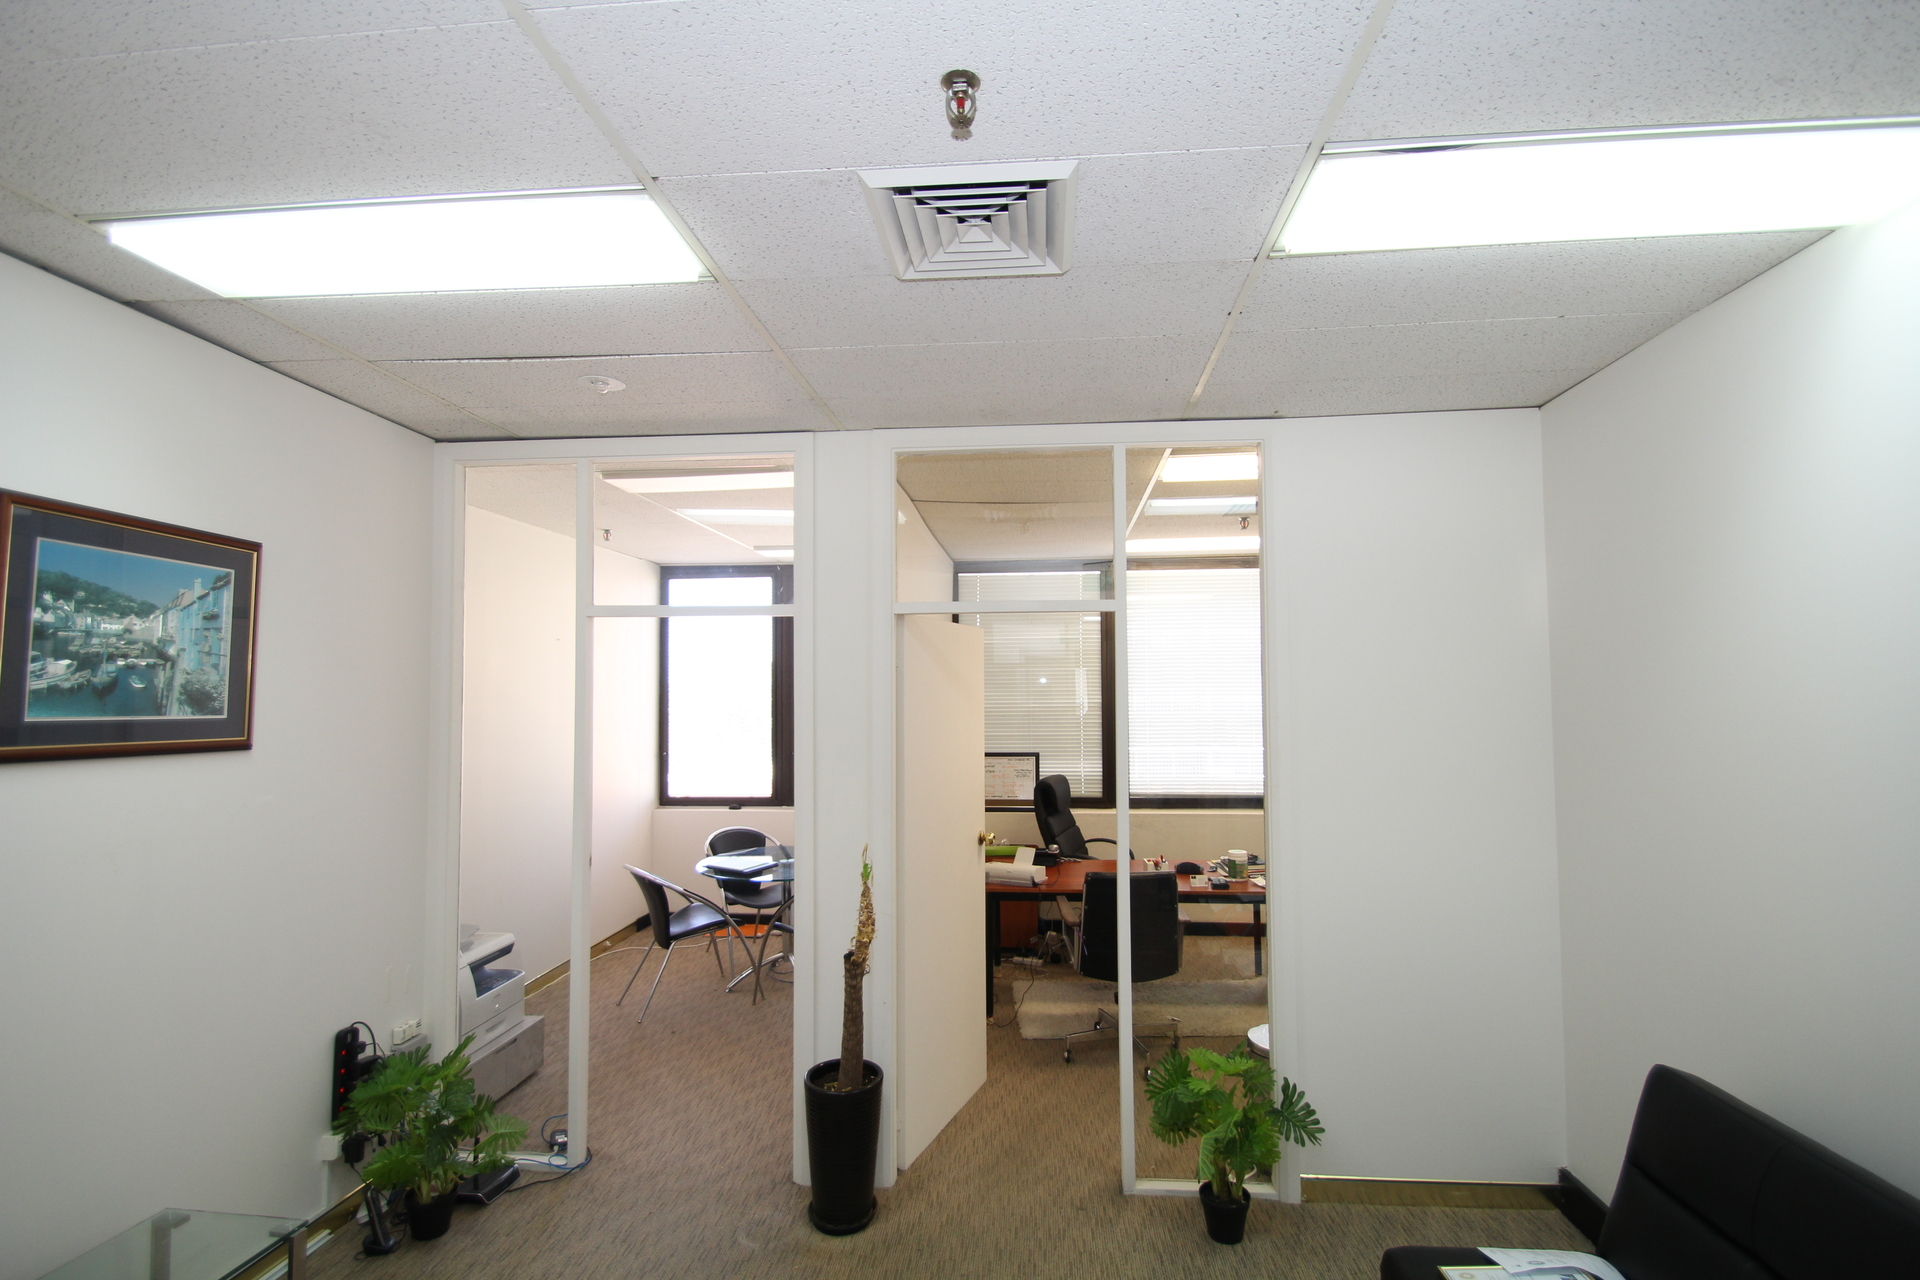 AFFORDABLE COMPACT OFFICE SPACE IN THE HEART OF BONDI JUNCTION